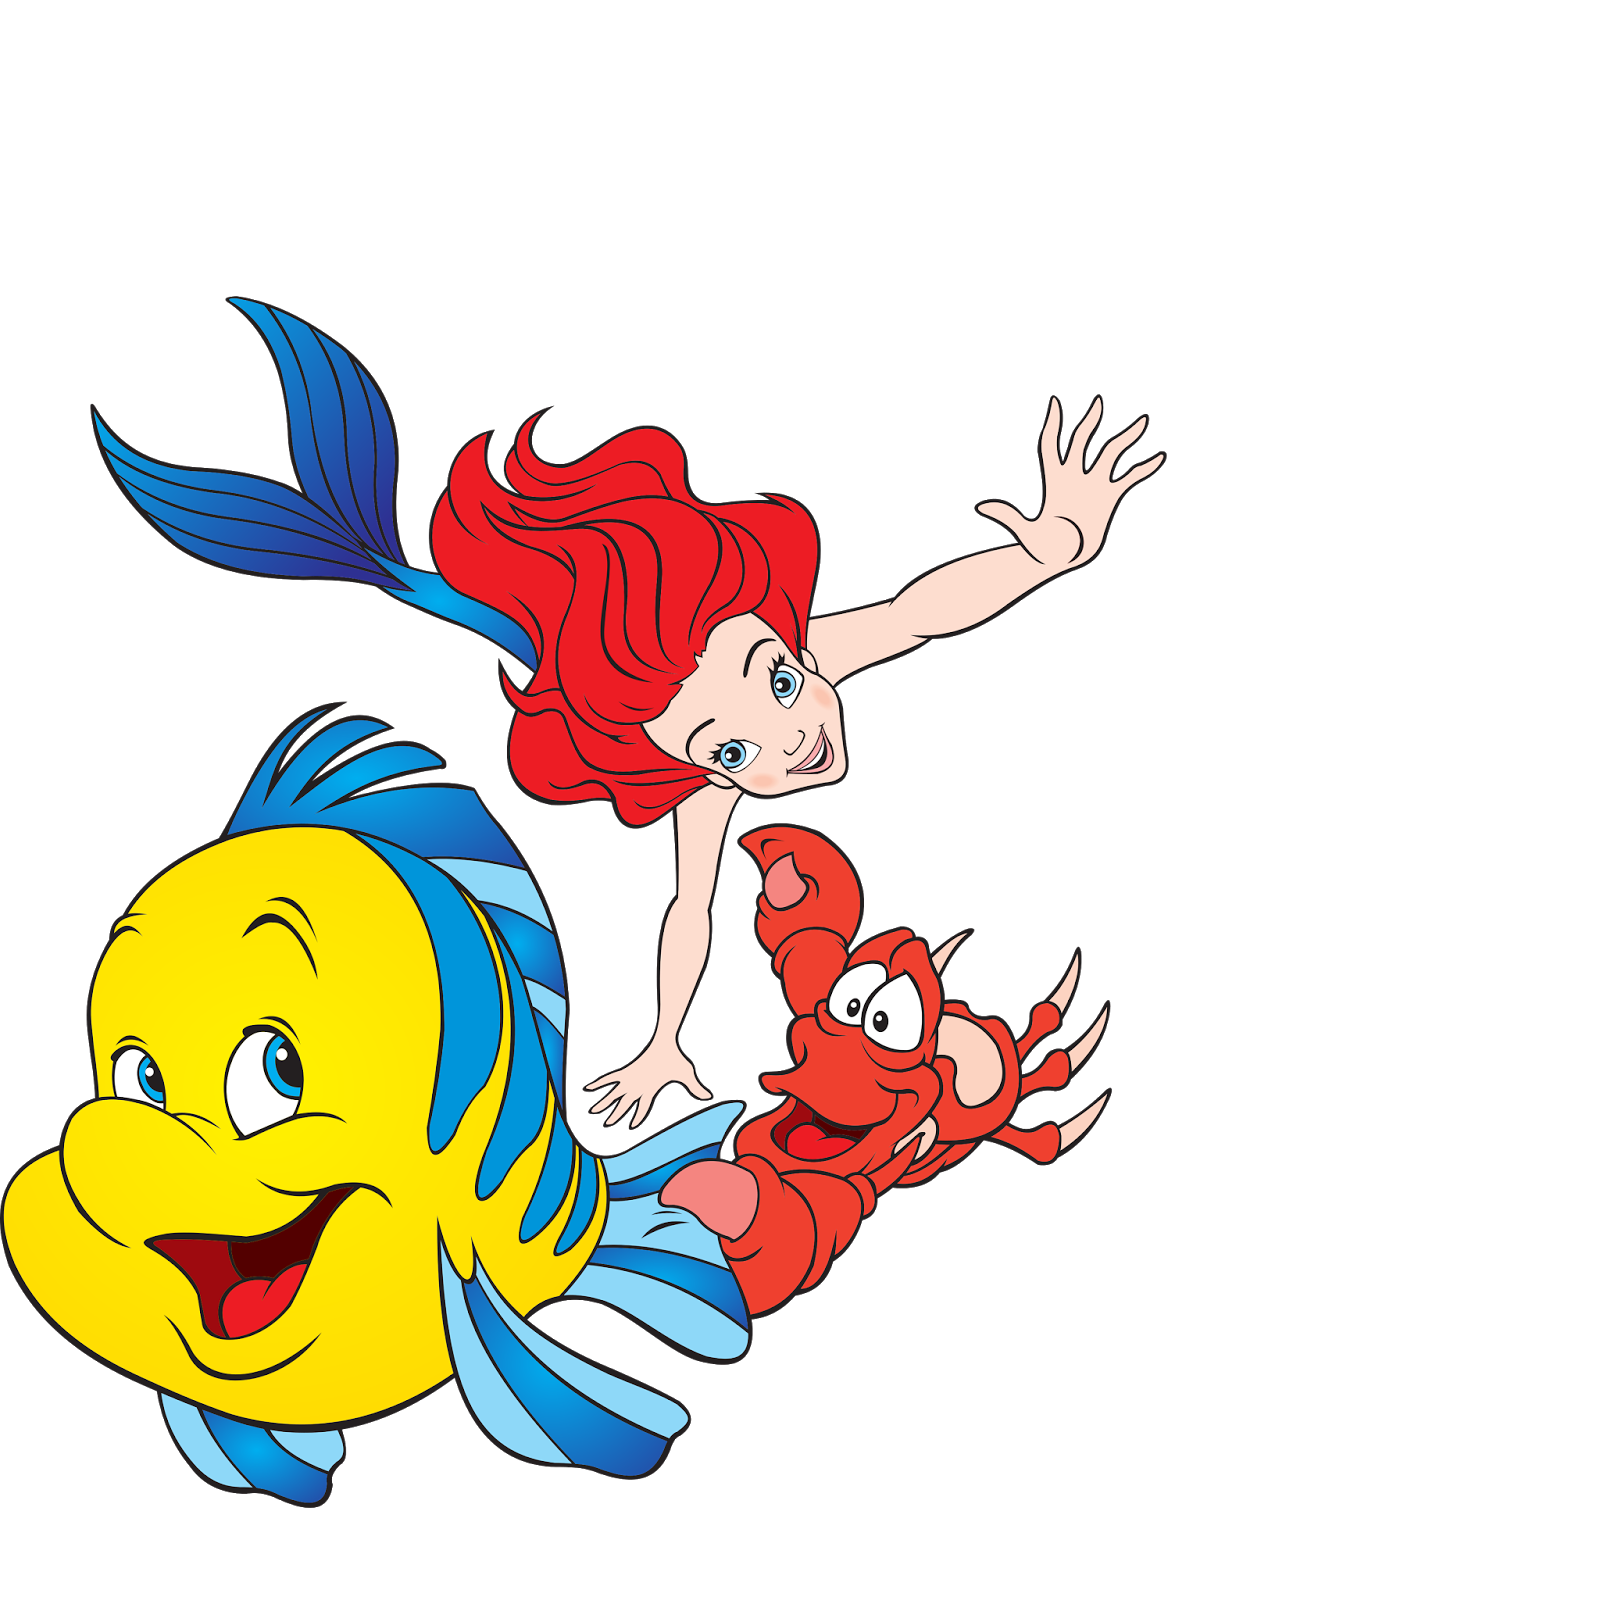 Little mermaid fish clipart banner black and white Free Lego Ninjago Clipart at GetDrawings.com | Free for personal use ... banner black and white